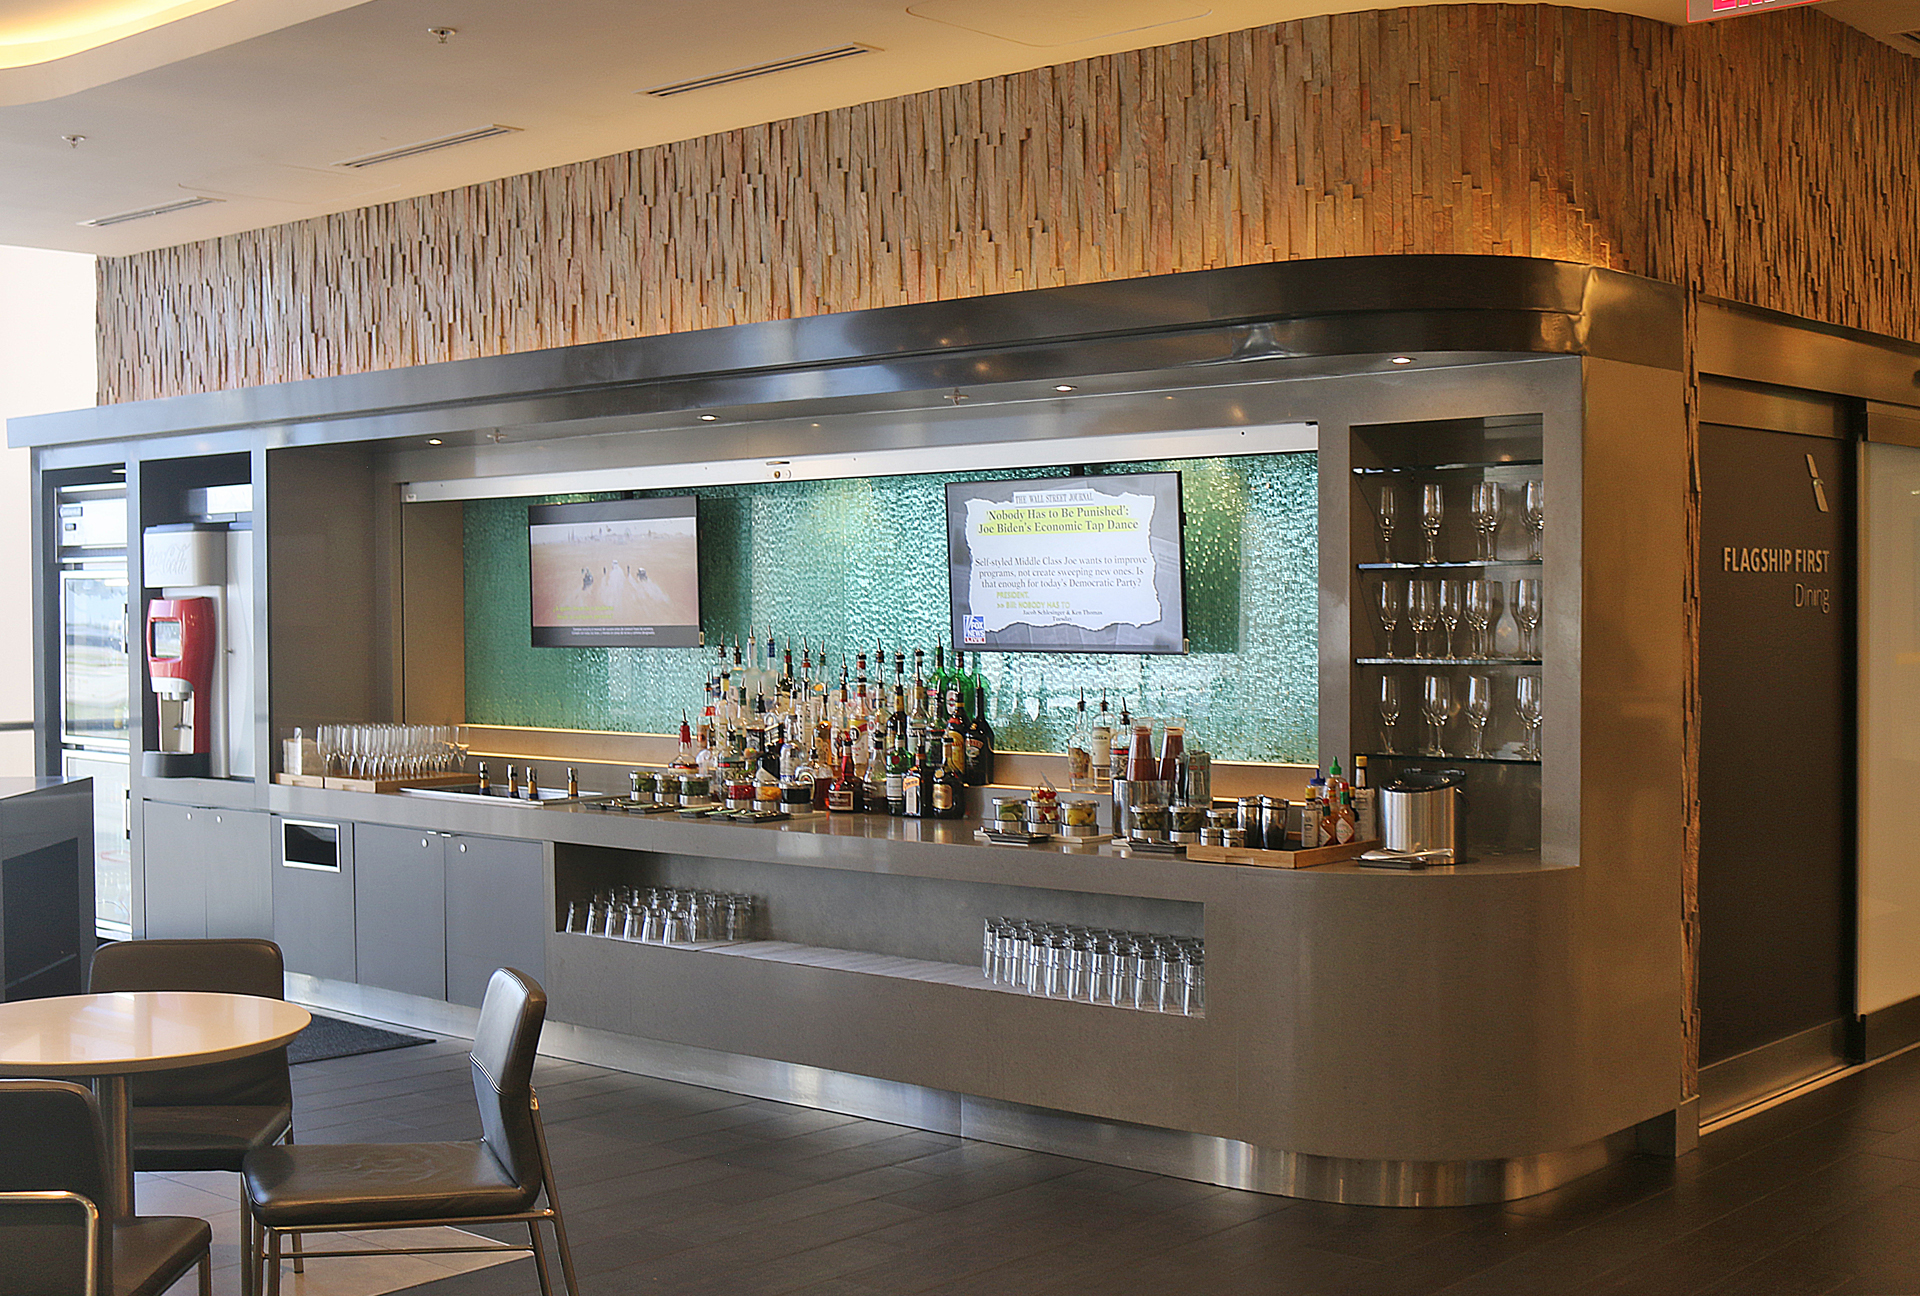 American Airlines Flagship Lounge Miami